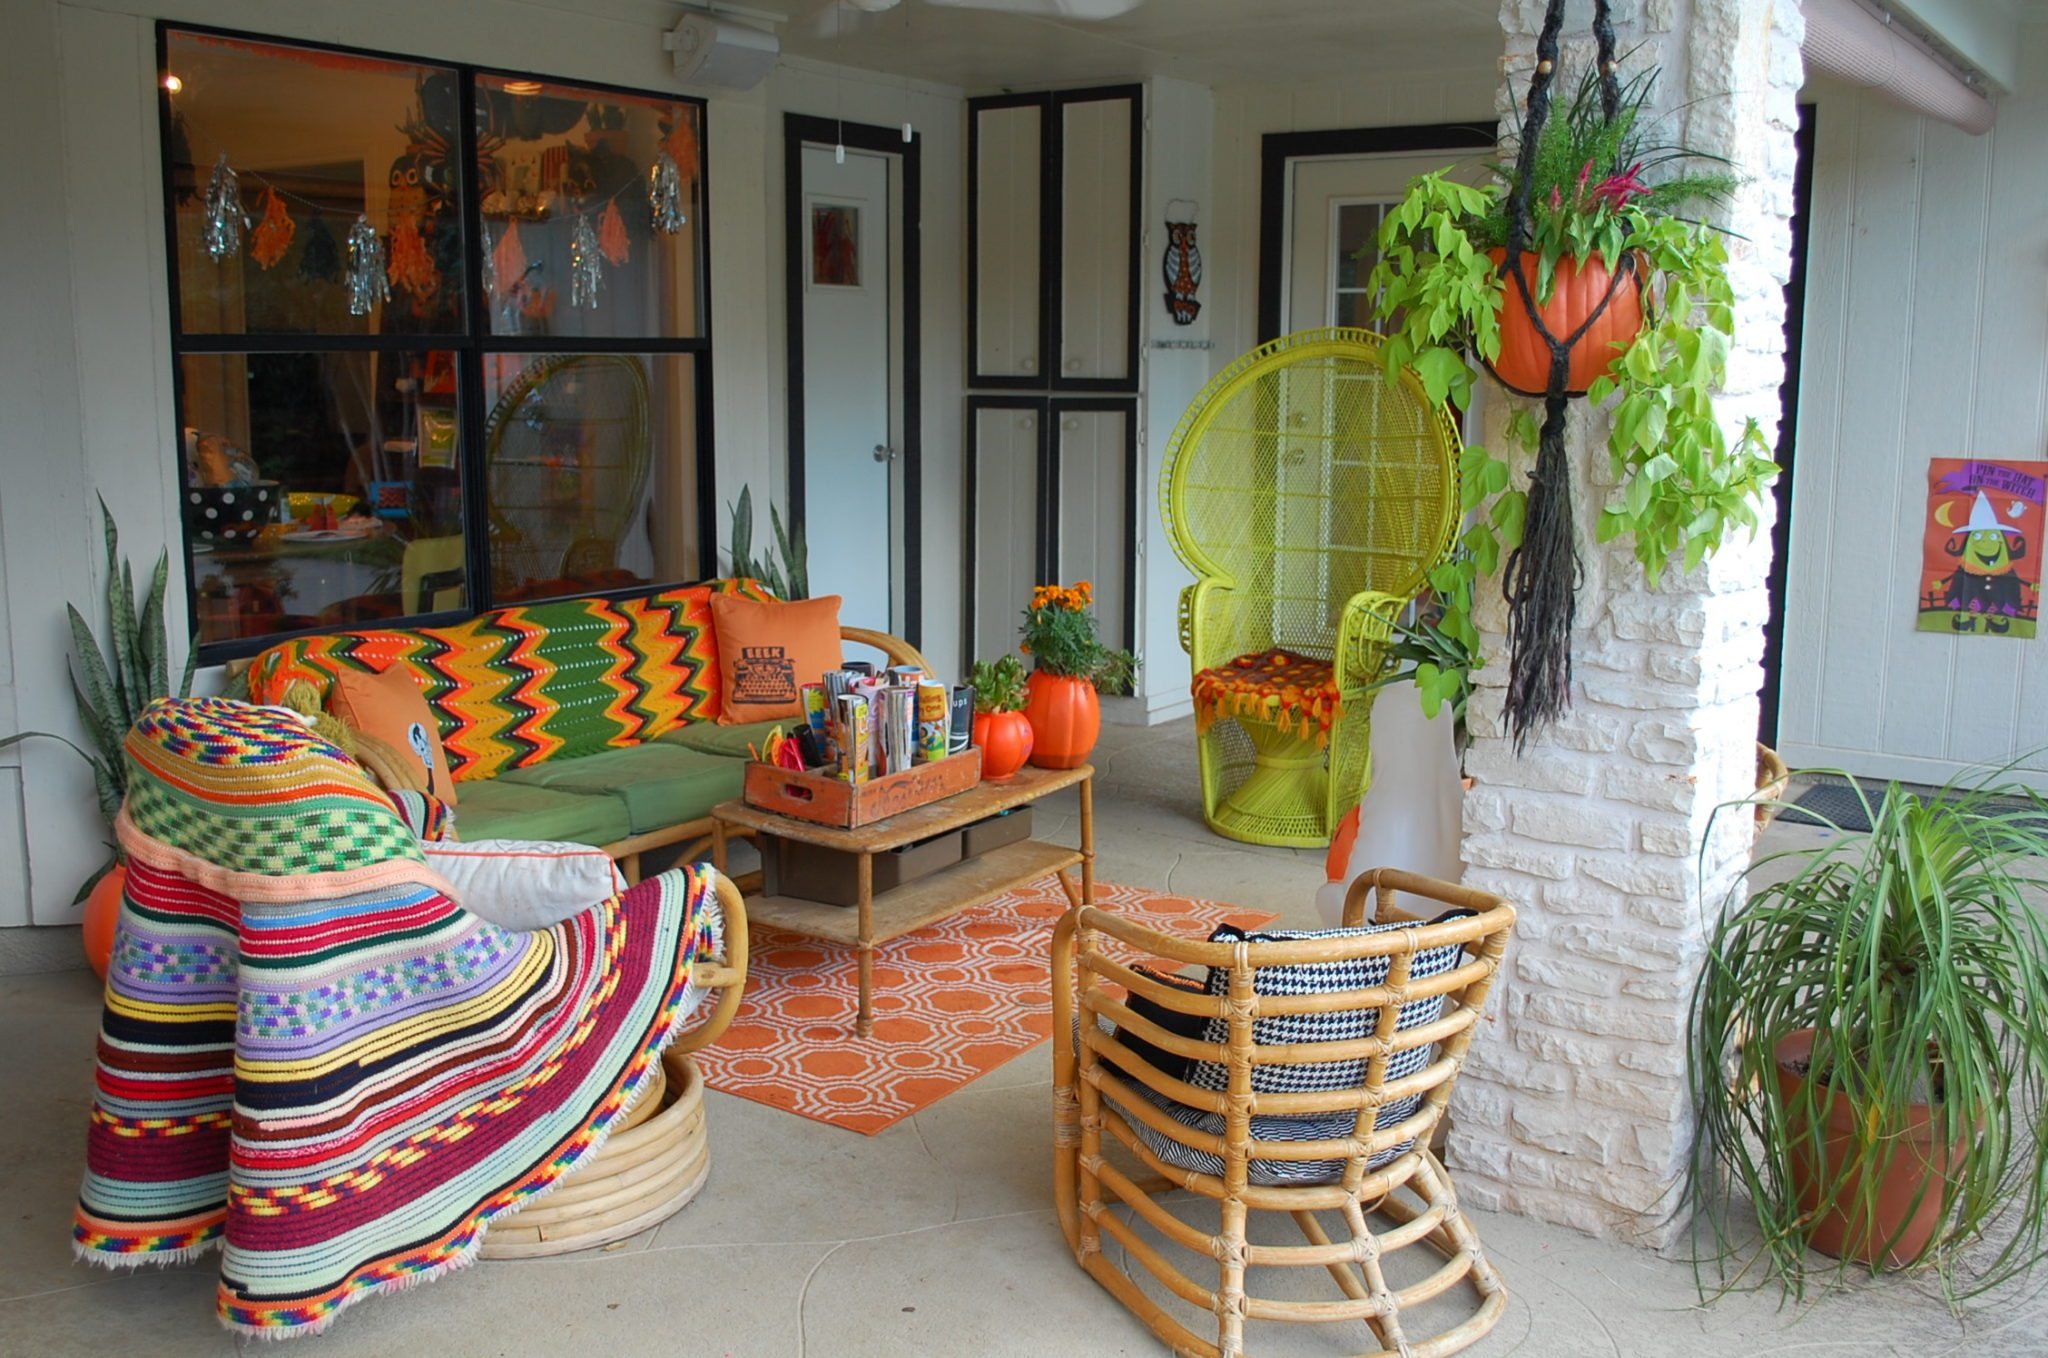 fall porch with afghans and pumpkins